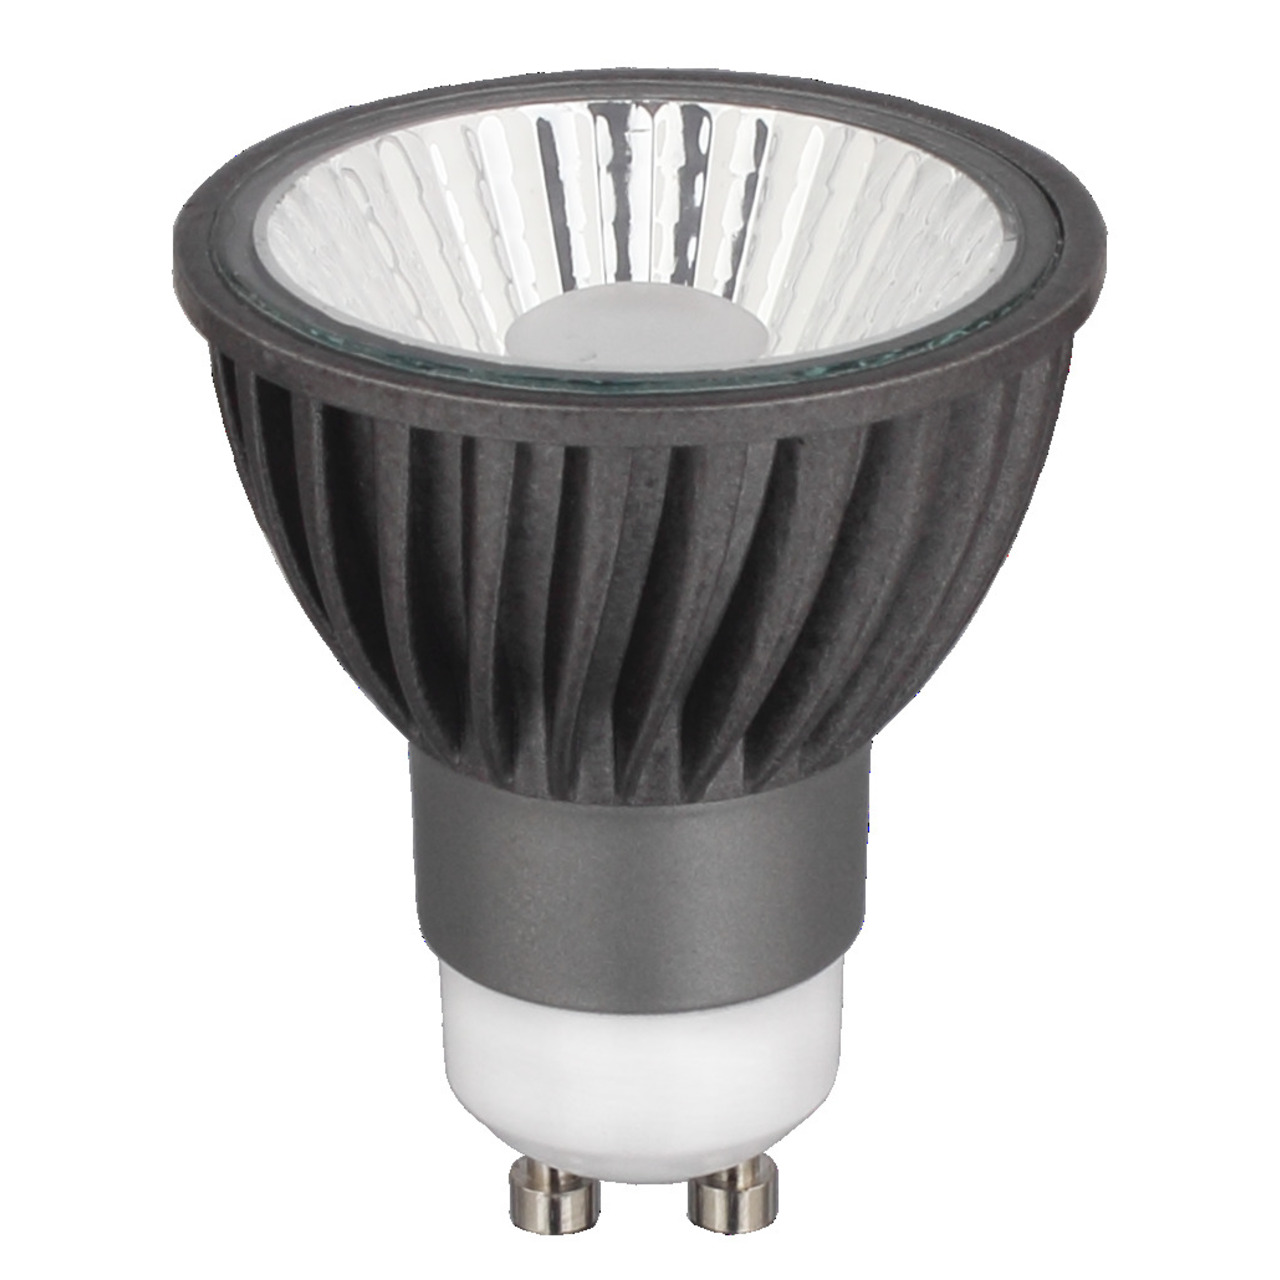 CV-Lighting HALED III 7-W-GU10-LED-Lampe- warmweiund-223 - dimmbar- 24und-176